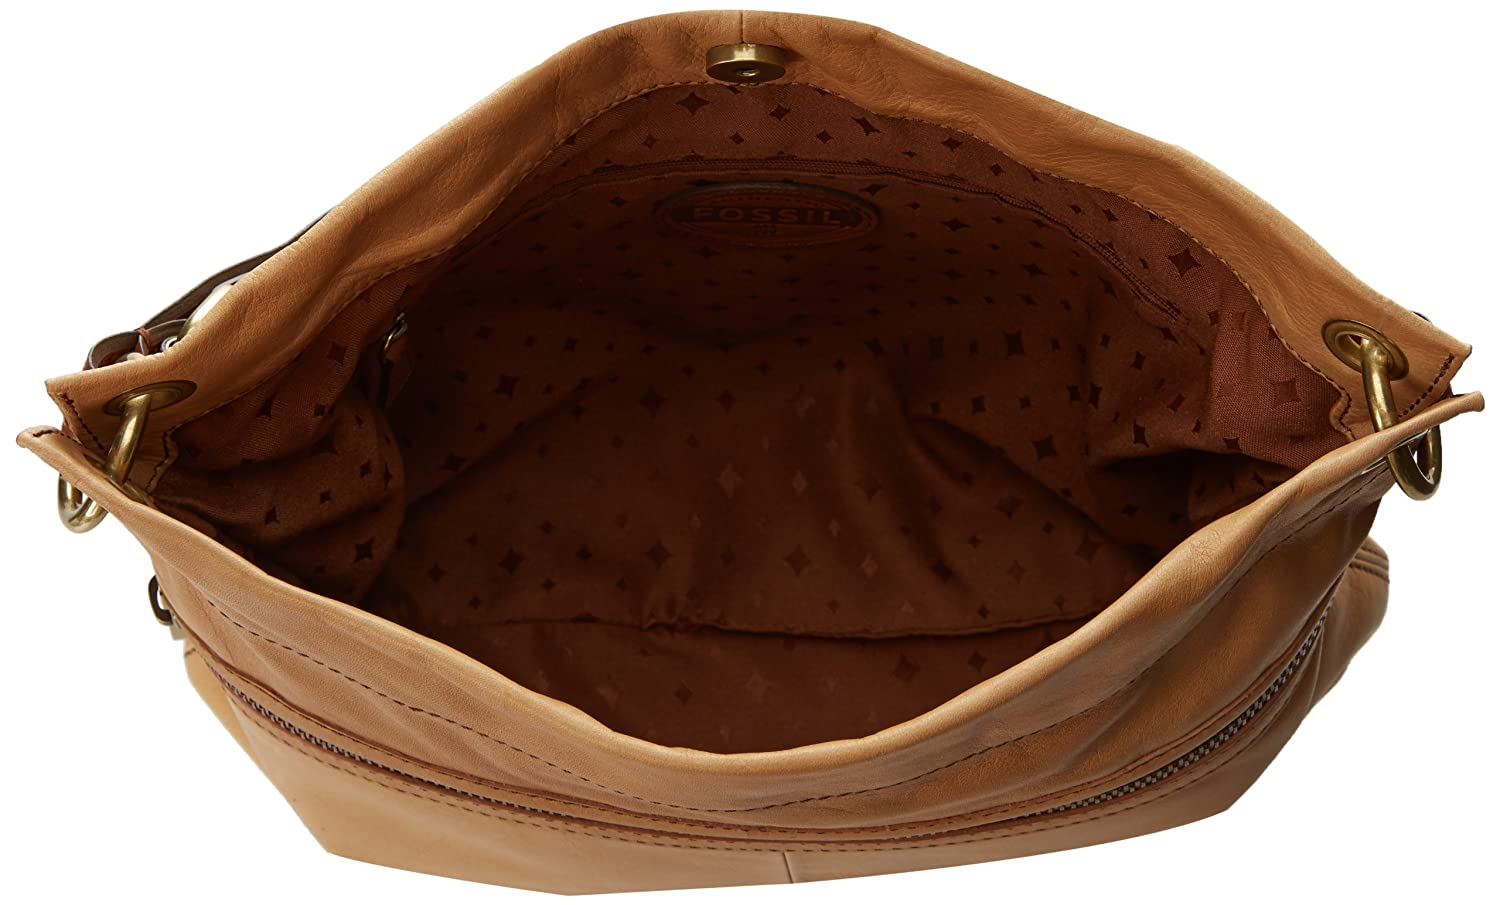 Fossil Explorer Hobo Shoulder Bag, Camel, One Size: Handbags ...